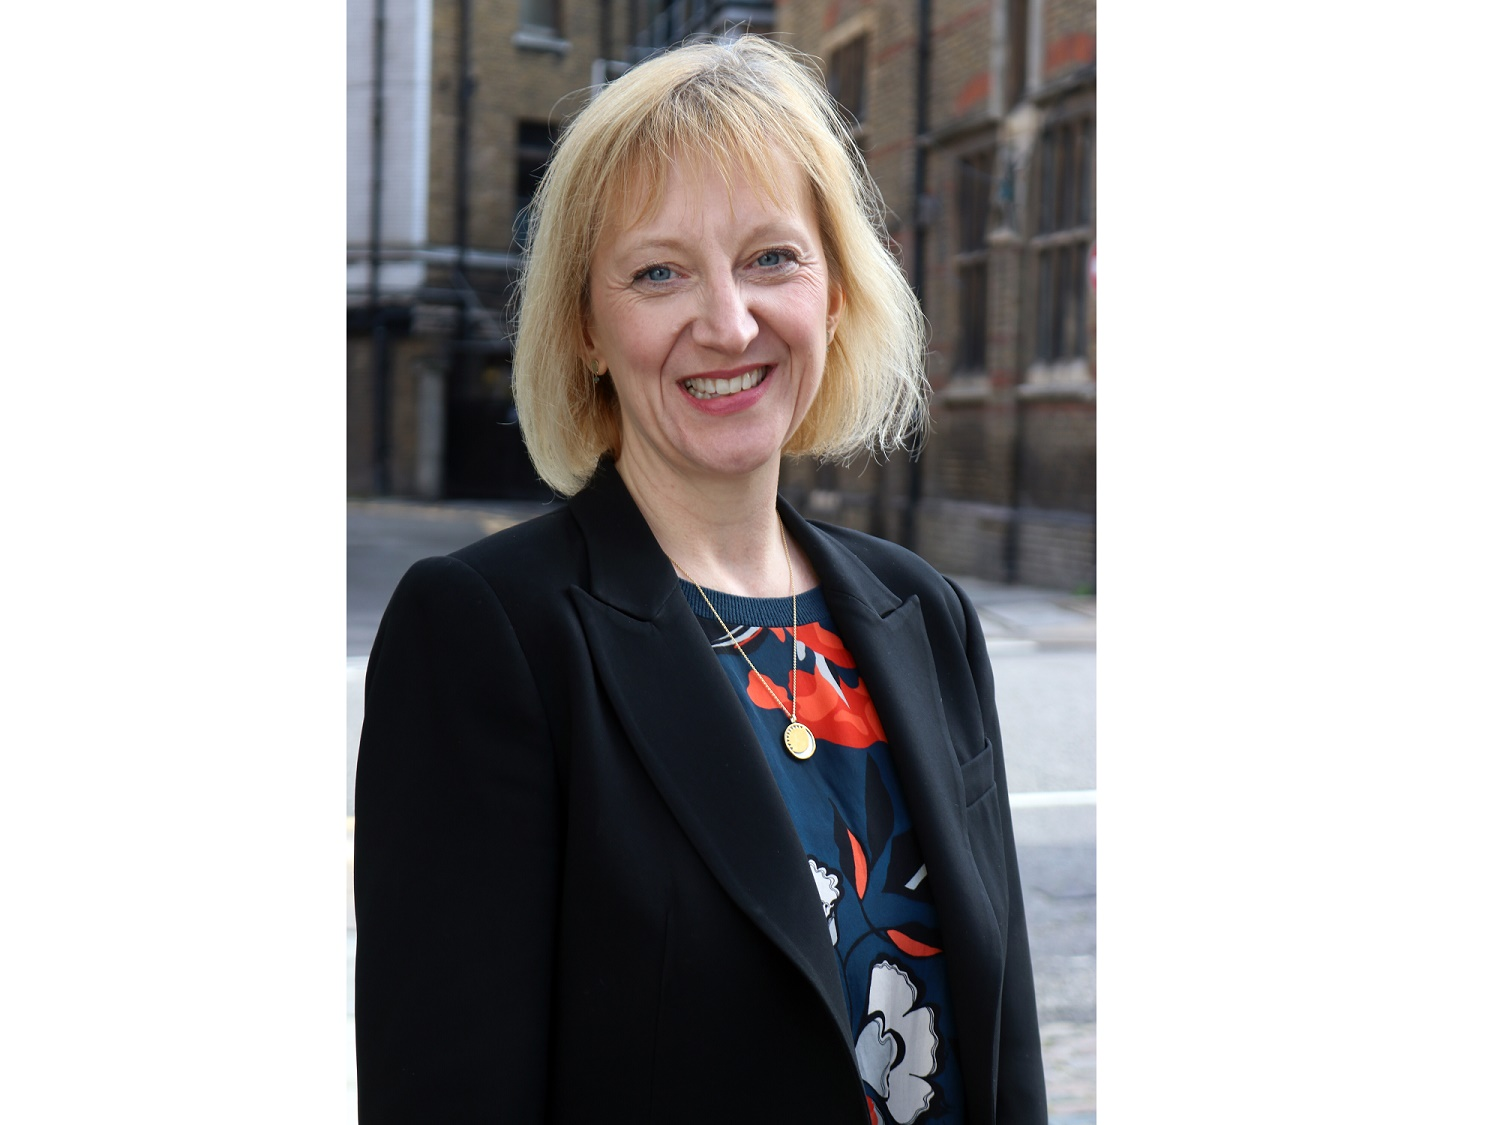 ehospice speaks to Sarah West, Hospice UK's Director of Campaigns & Communications